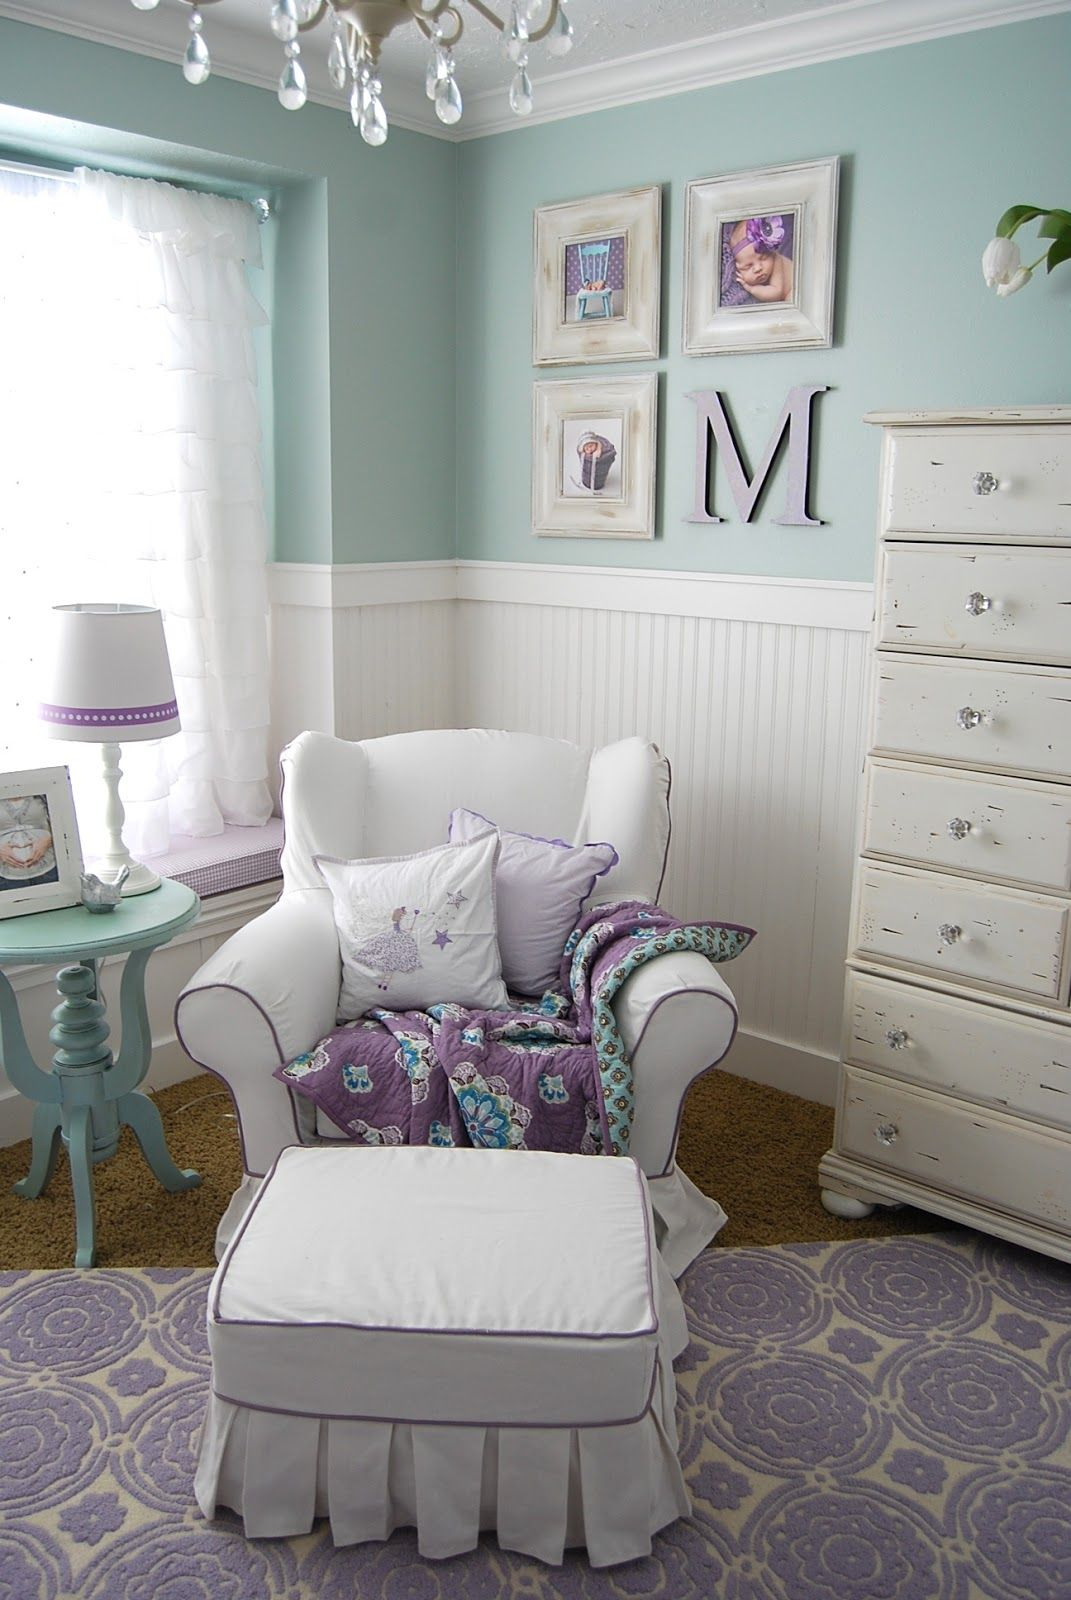 Baby Nursery Inspiration Purple Aqua Tiffany Blue Robins Egg Room Chandelier Home By Heidi Accents